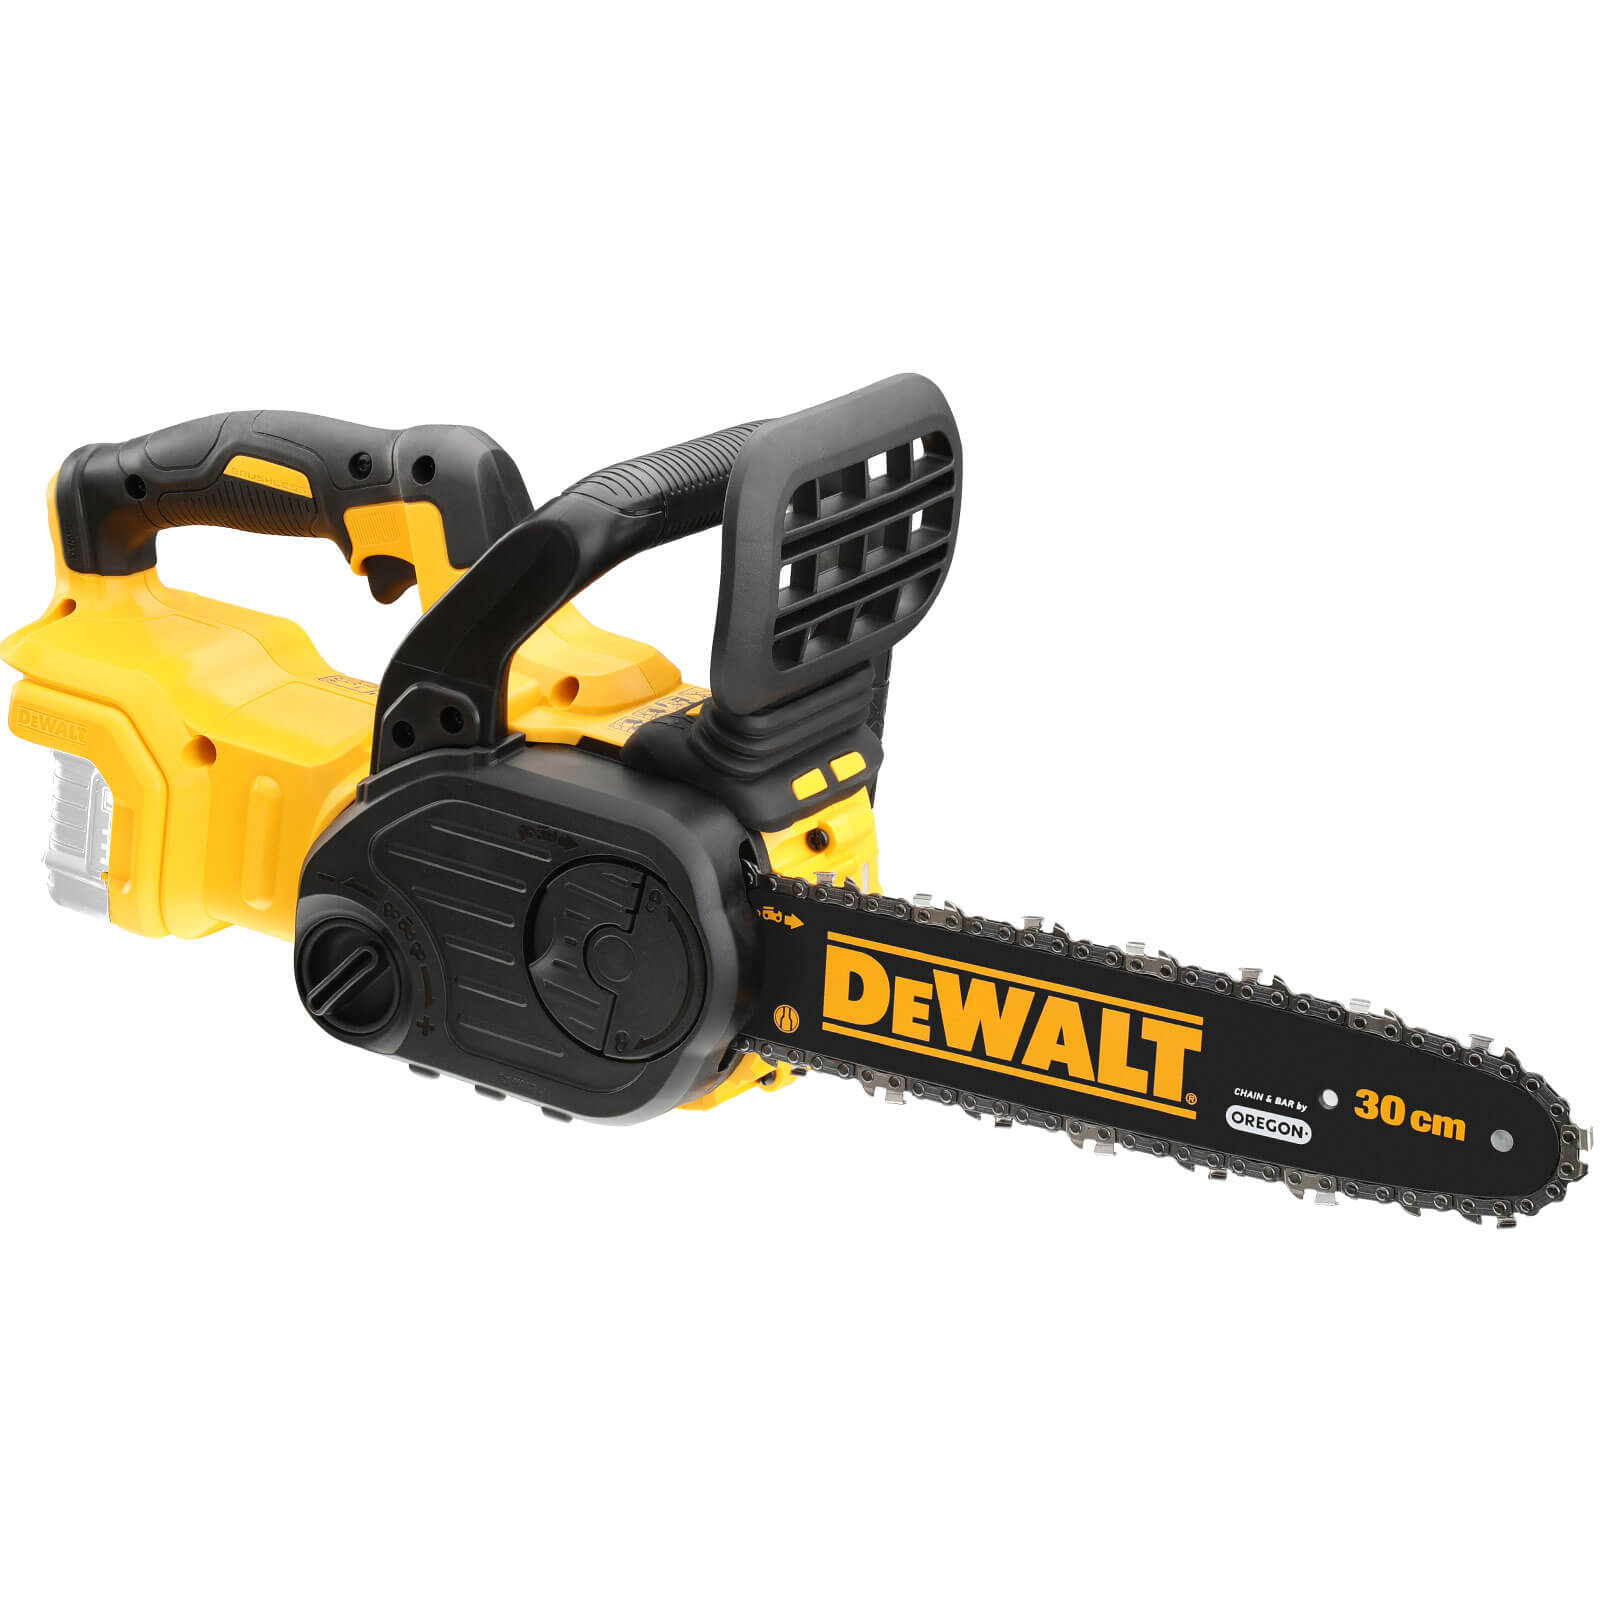 DeWalt DCM565 18v XR Cordless Brushless Compact Chainsaw 300mm No Batteries No Charger No Case